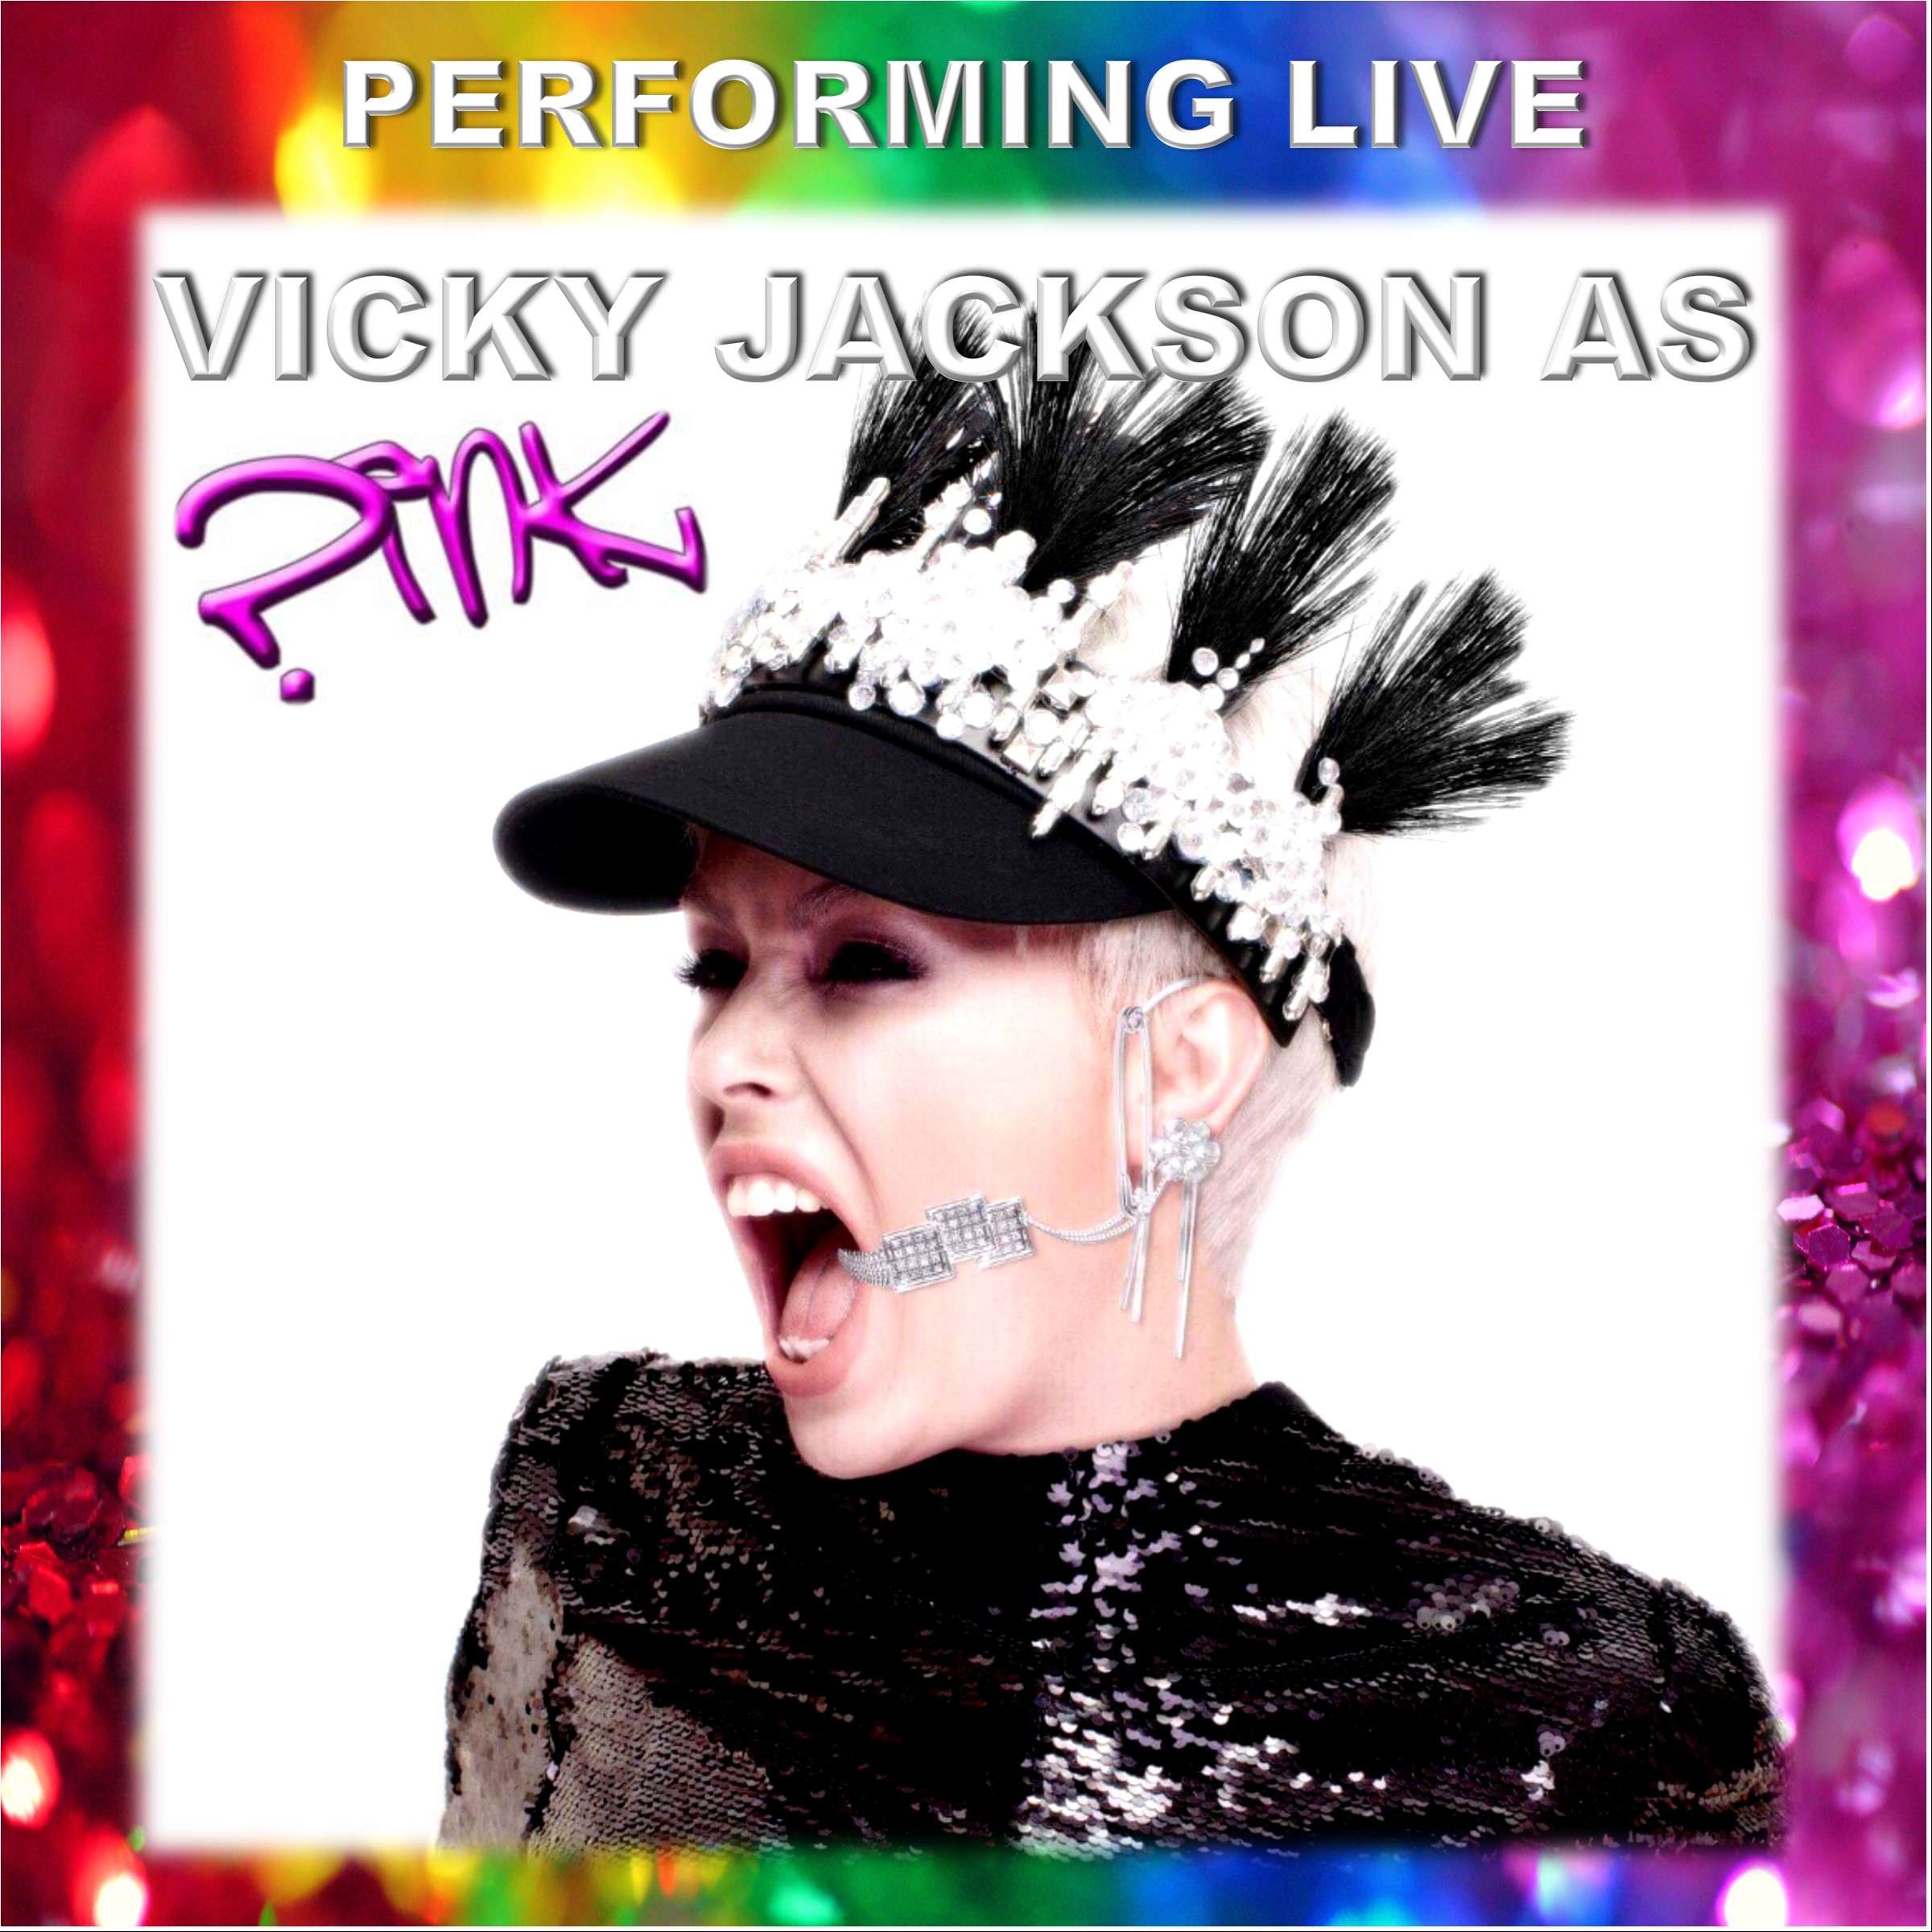 Performing Live - Vicky Jackson as P1nk